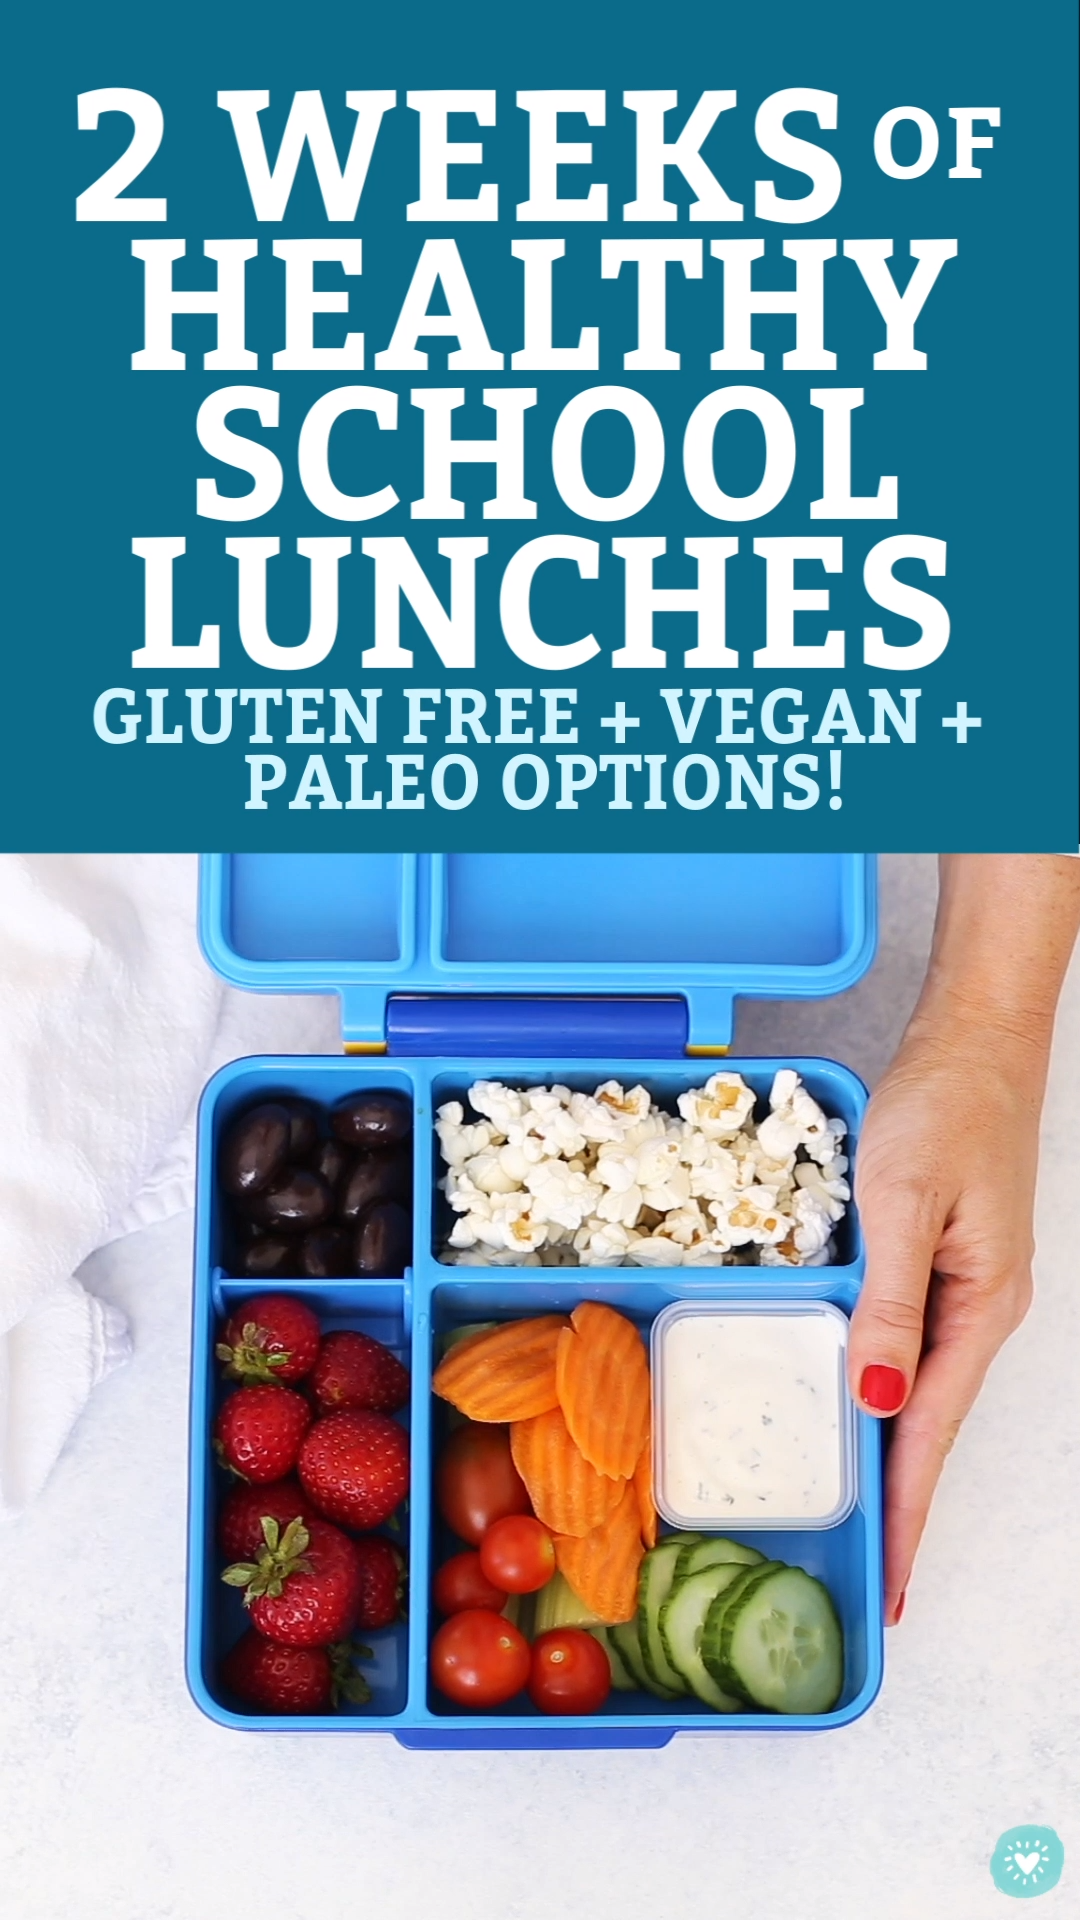 2 Weeks of Healthy School Lunches! (Gluten & Dairy Free)